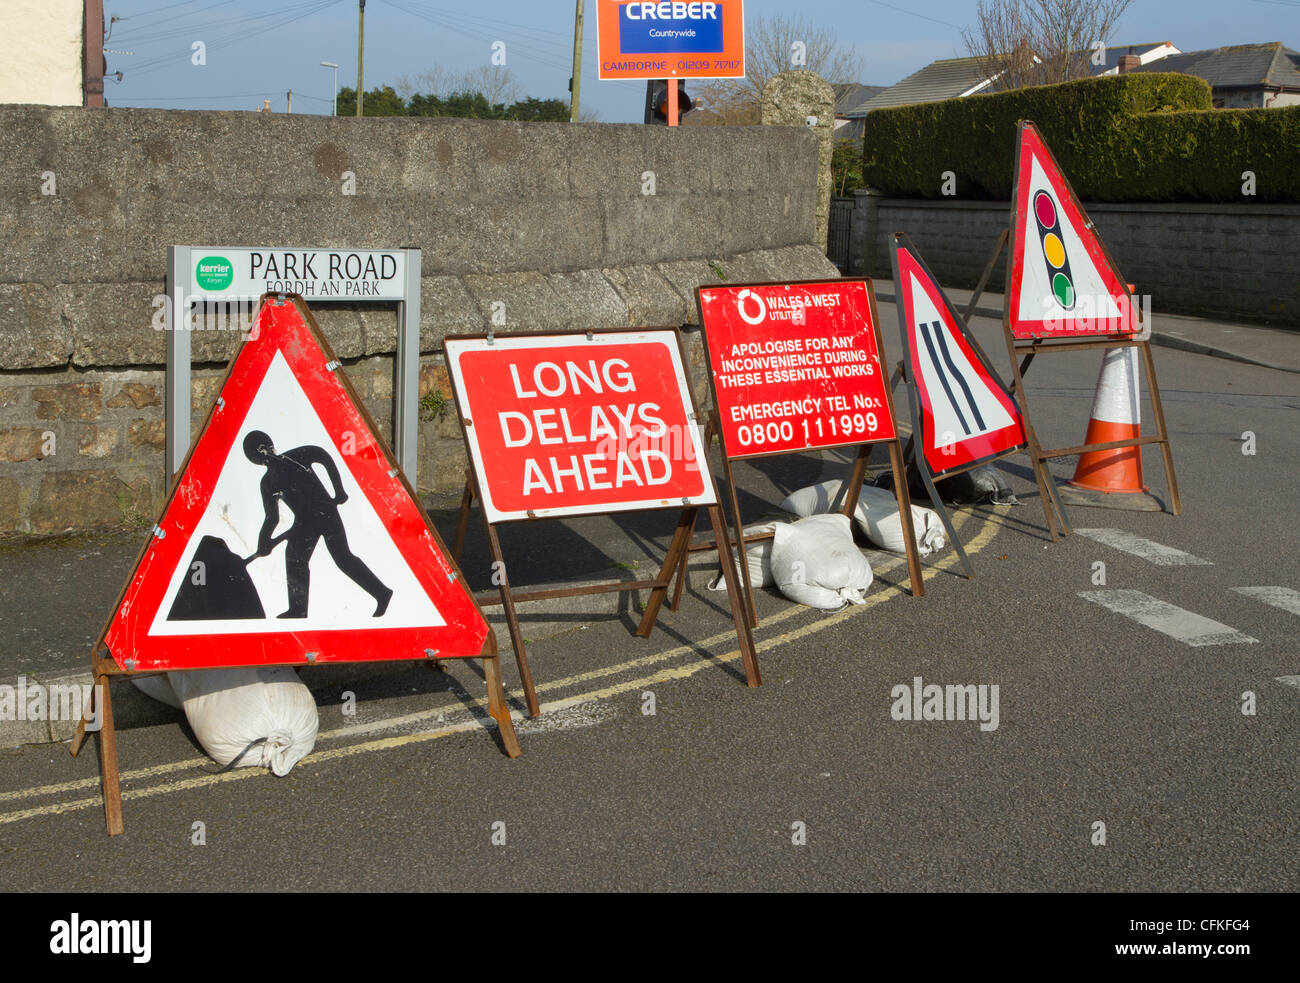 Lots of road signs while a road is dug up by a utilities company.  Camborne Cornwall UK. - Stock Image